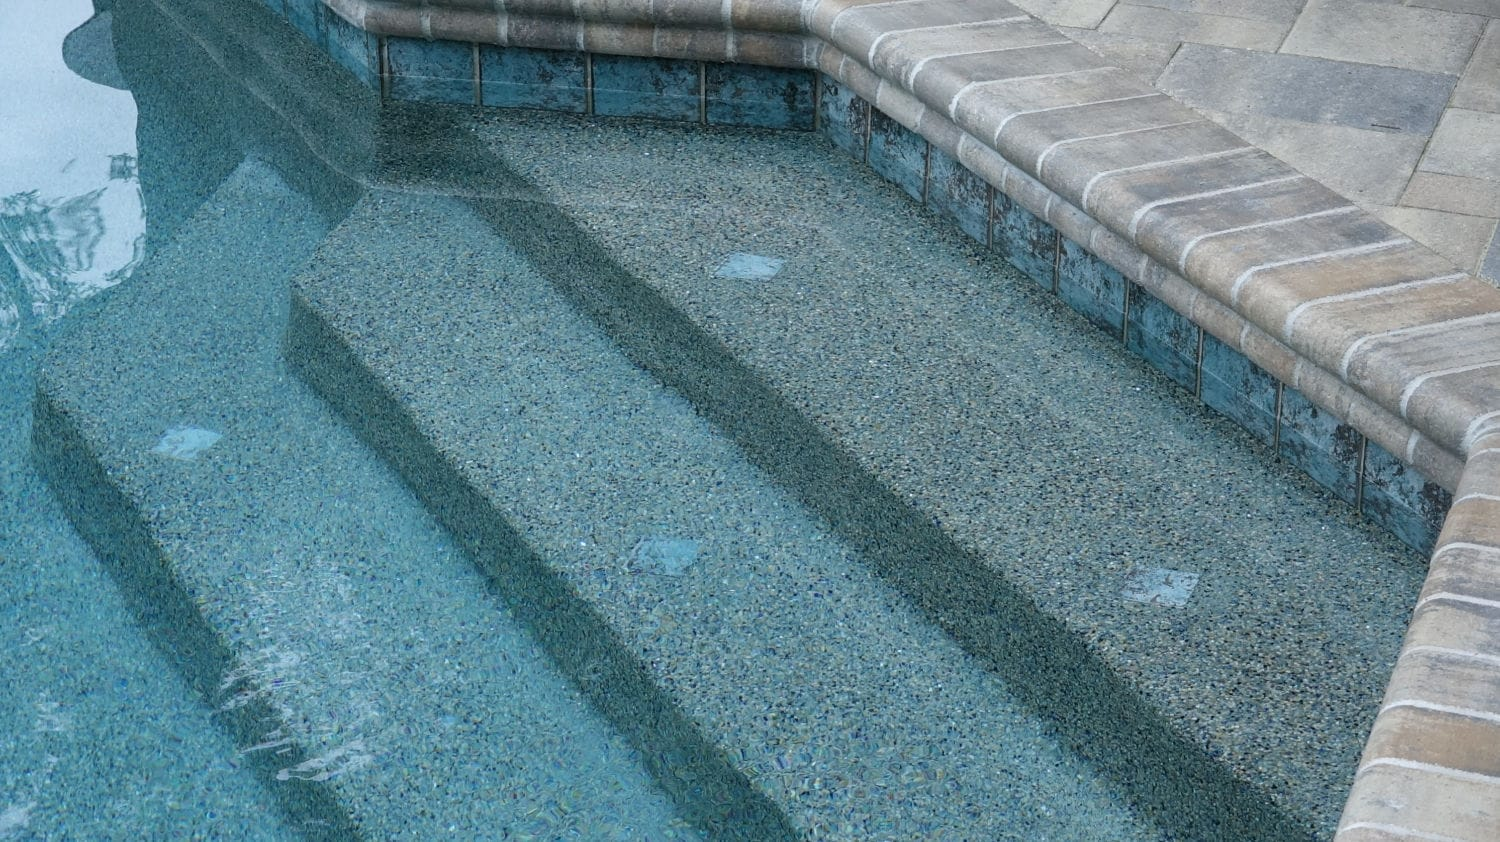 prism-matrix-constellation-pool-finish-5